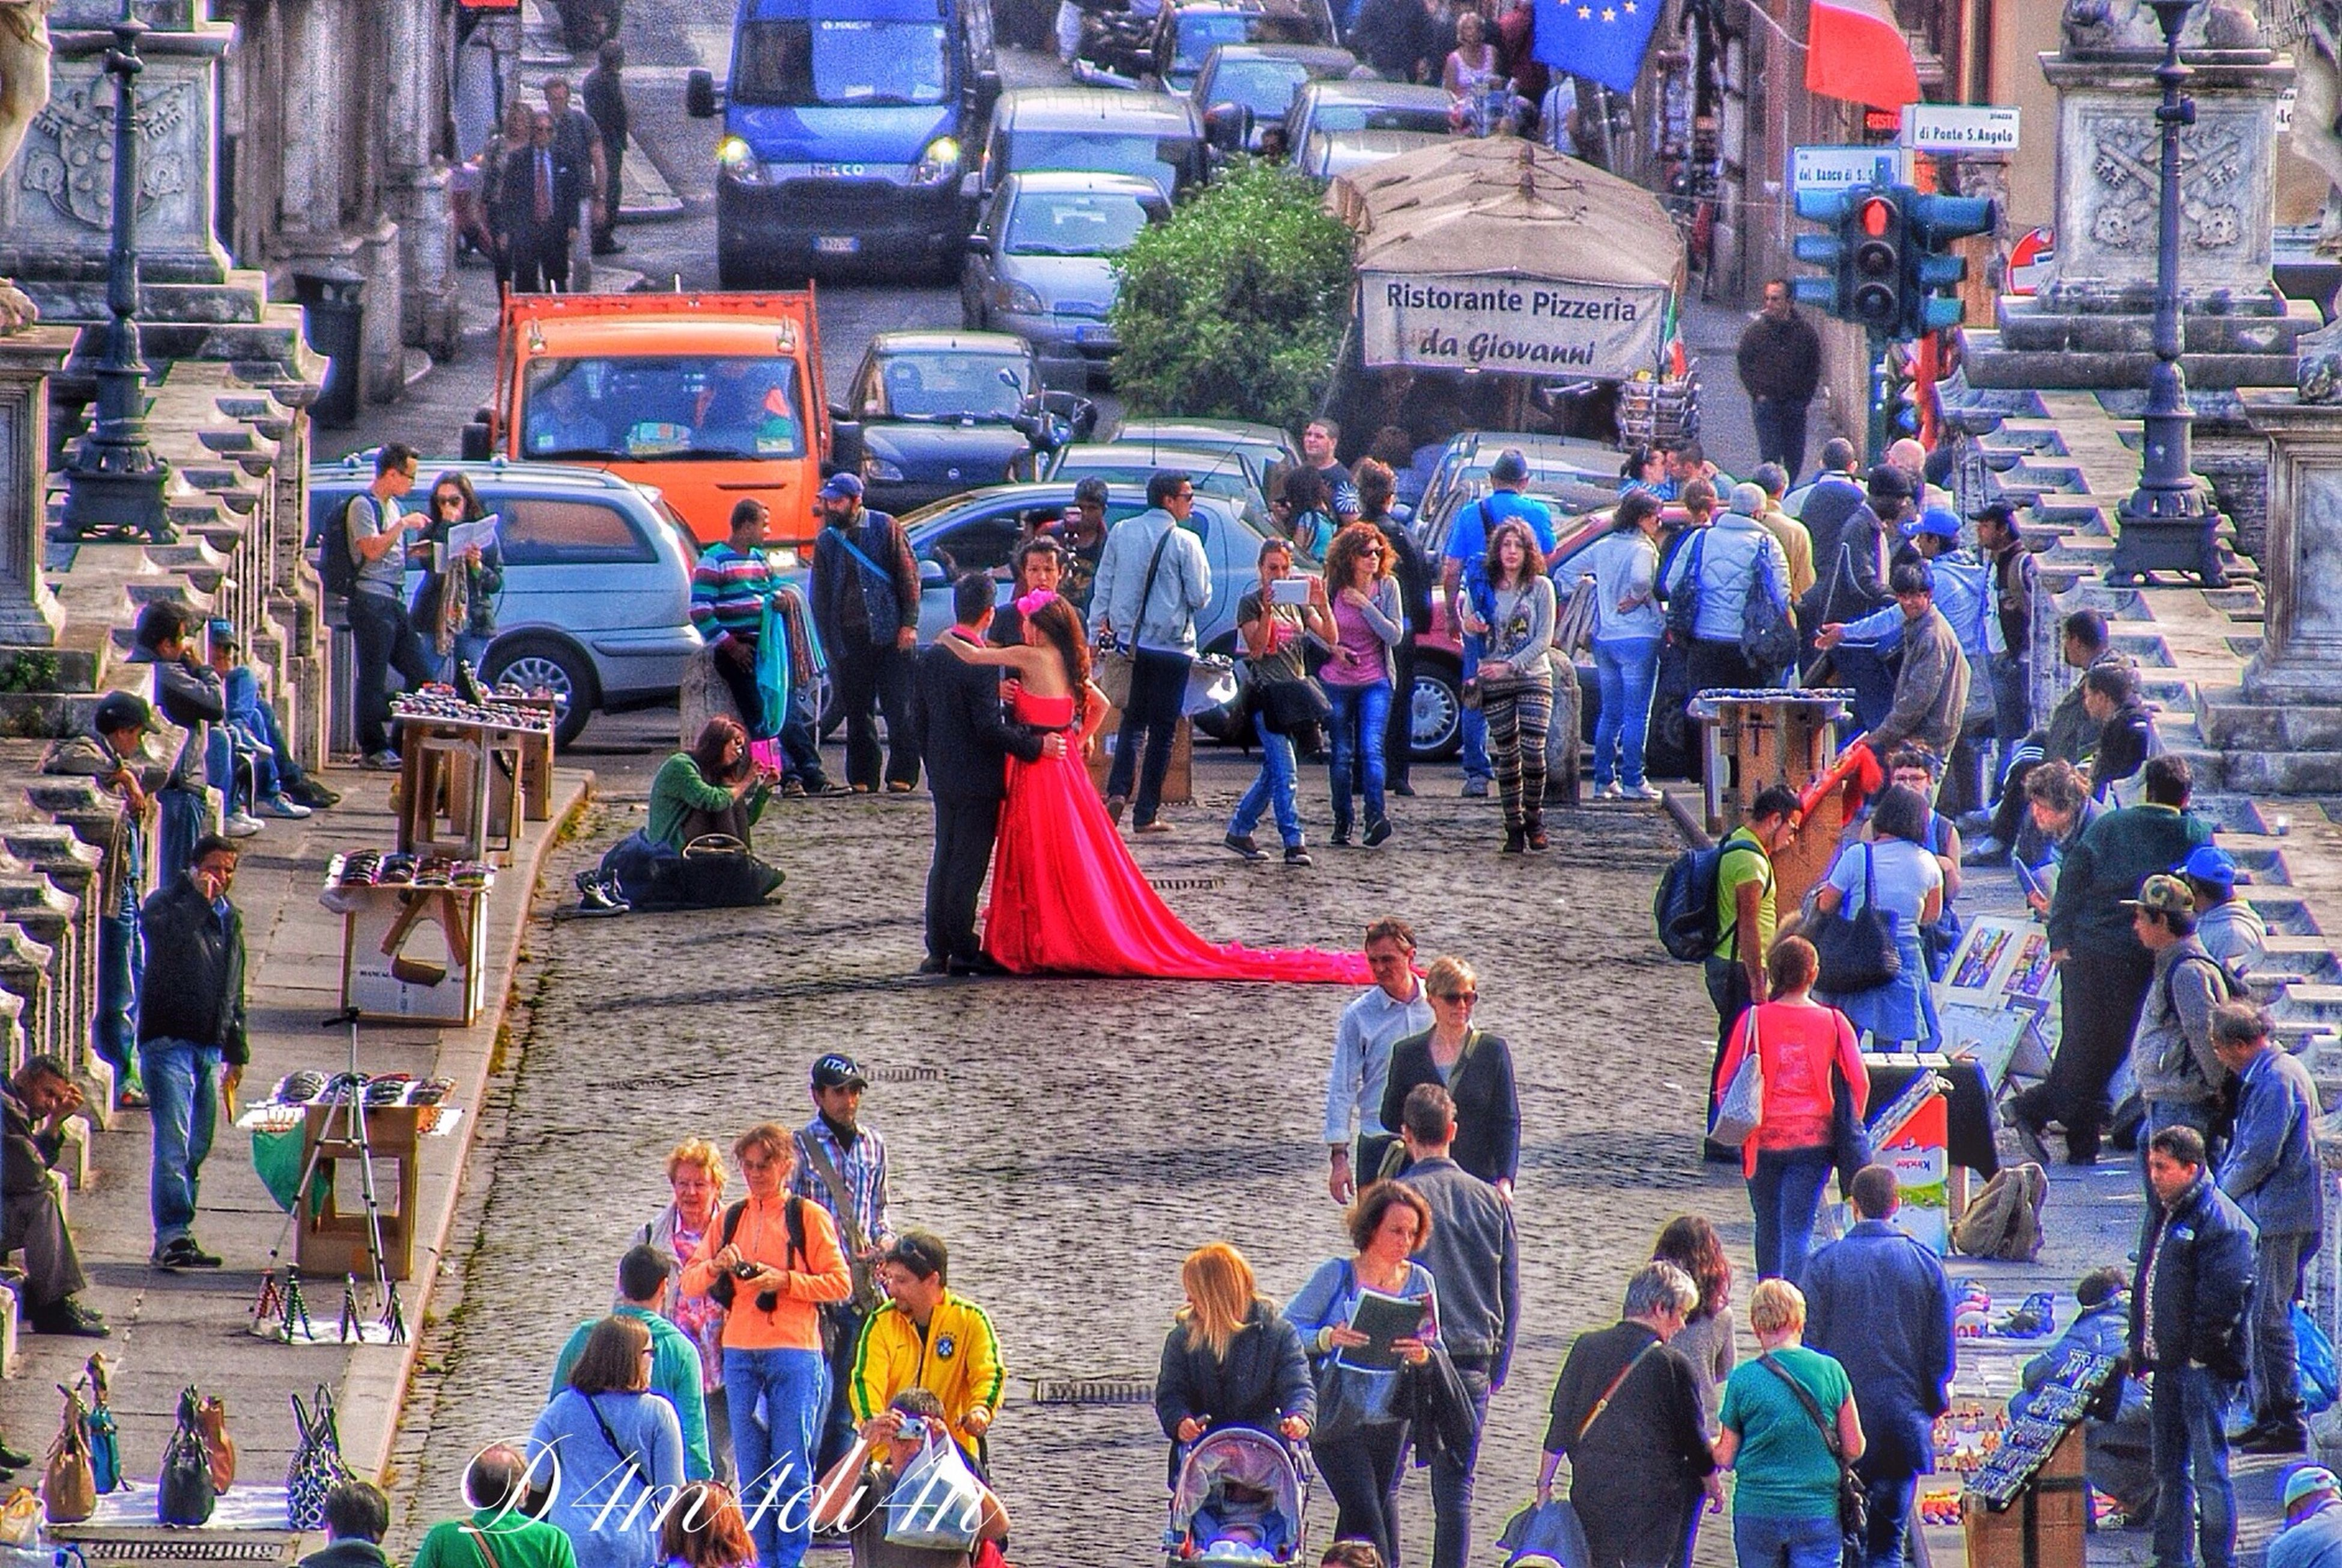 large group of people, men, crowd, person, lifestyles, street, leisure activity, mixed age range, market, city life, celebration, city, walking, market stall, building exterior, street market, traditional festival, built structure, event